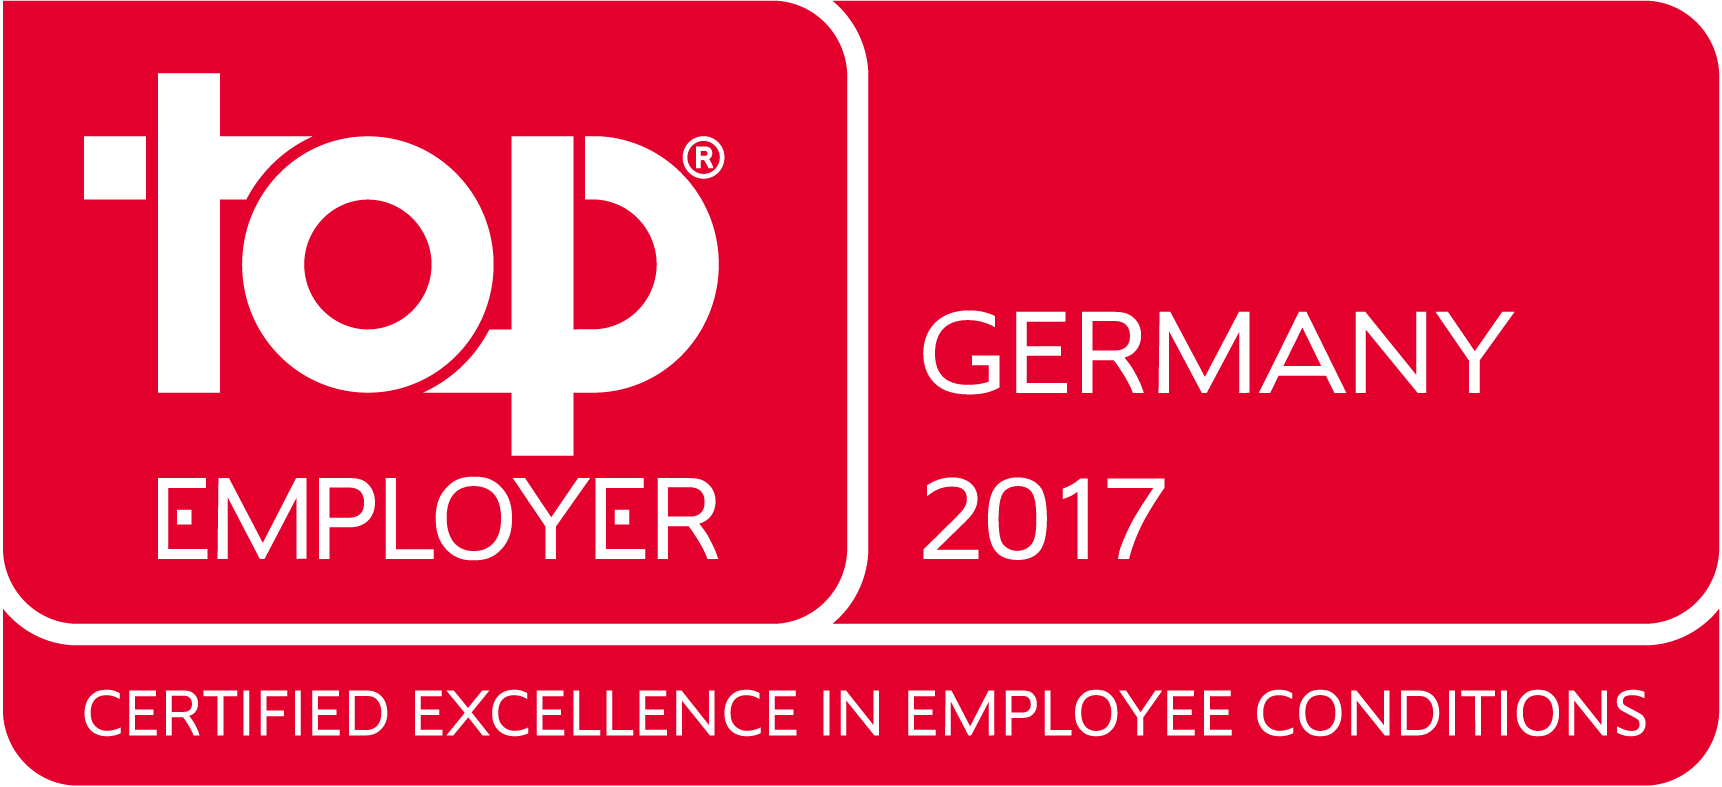 Boehringer Ingelheim Top Employer Germany